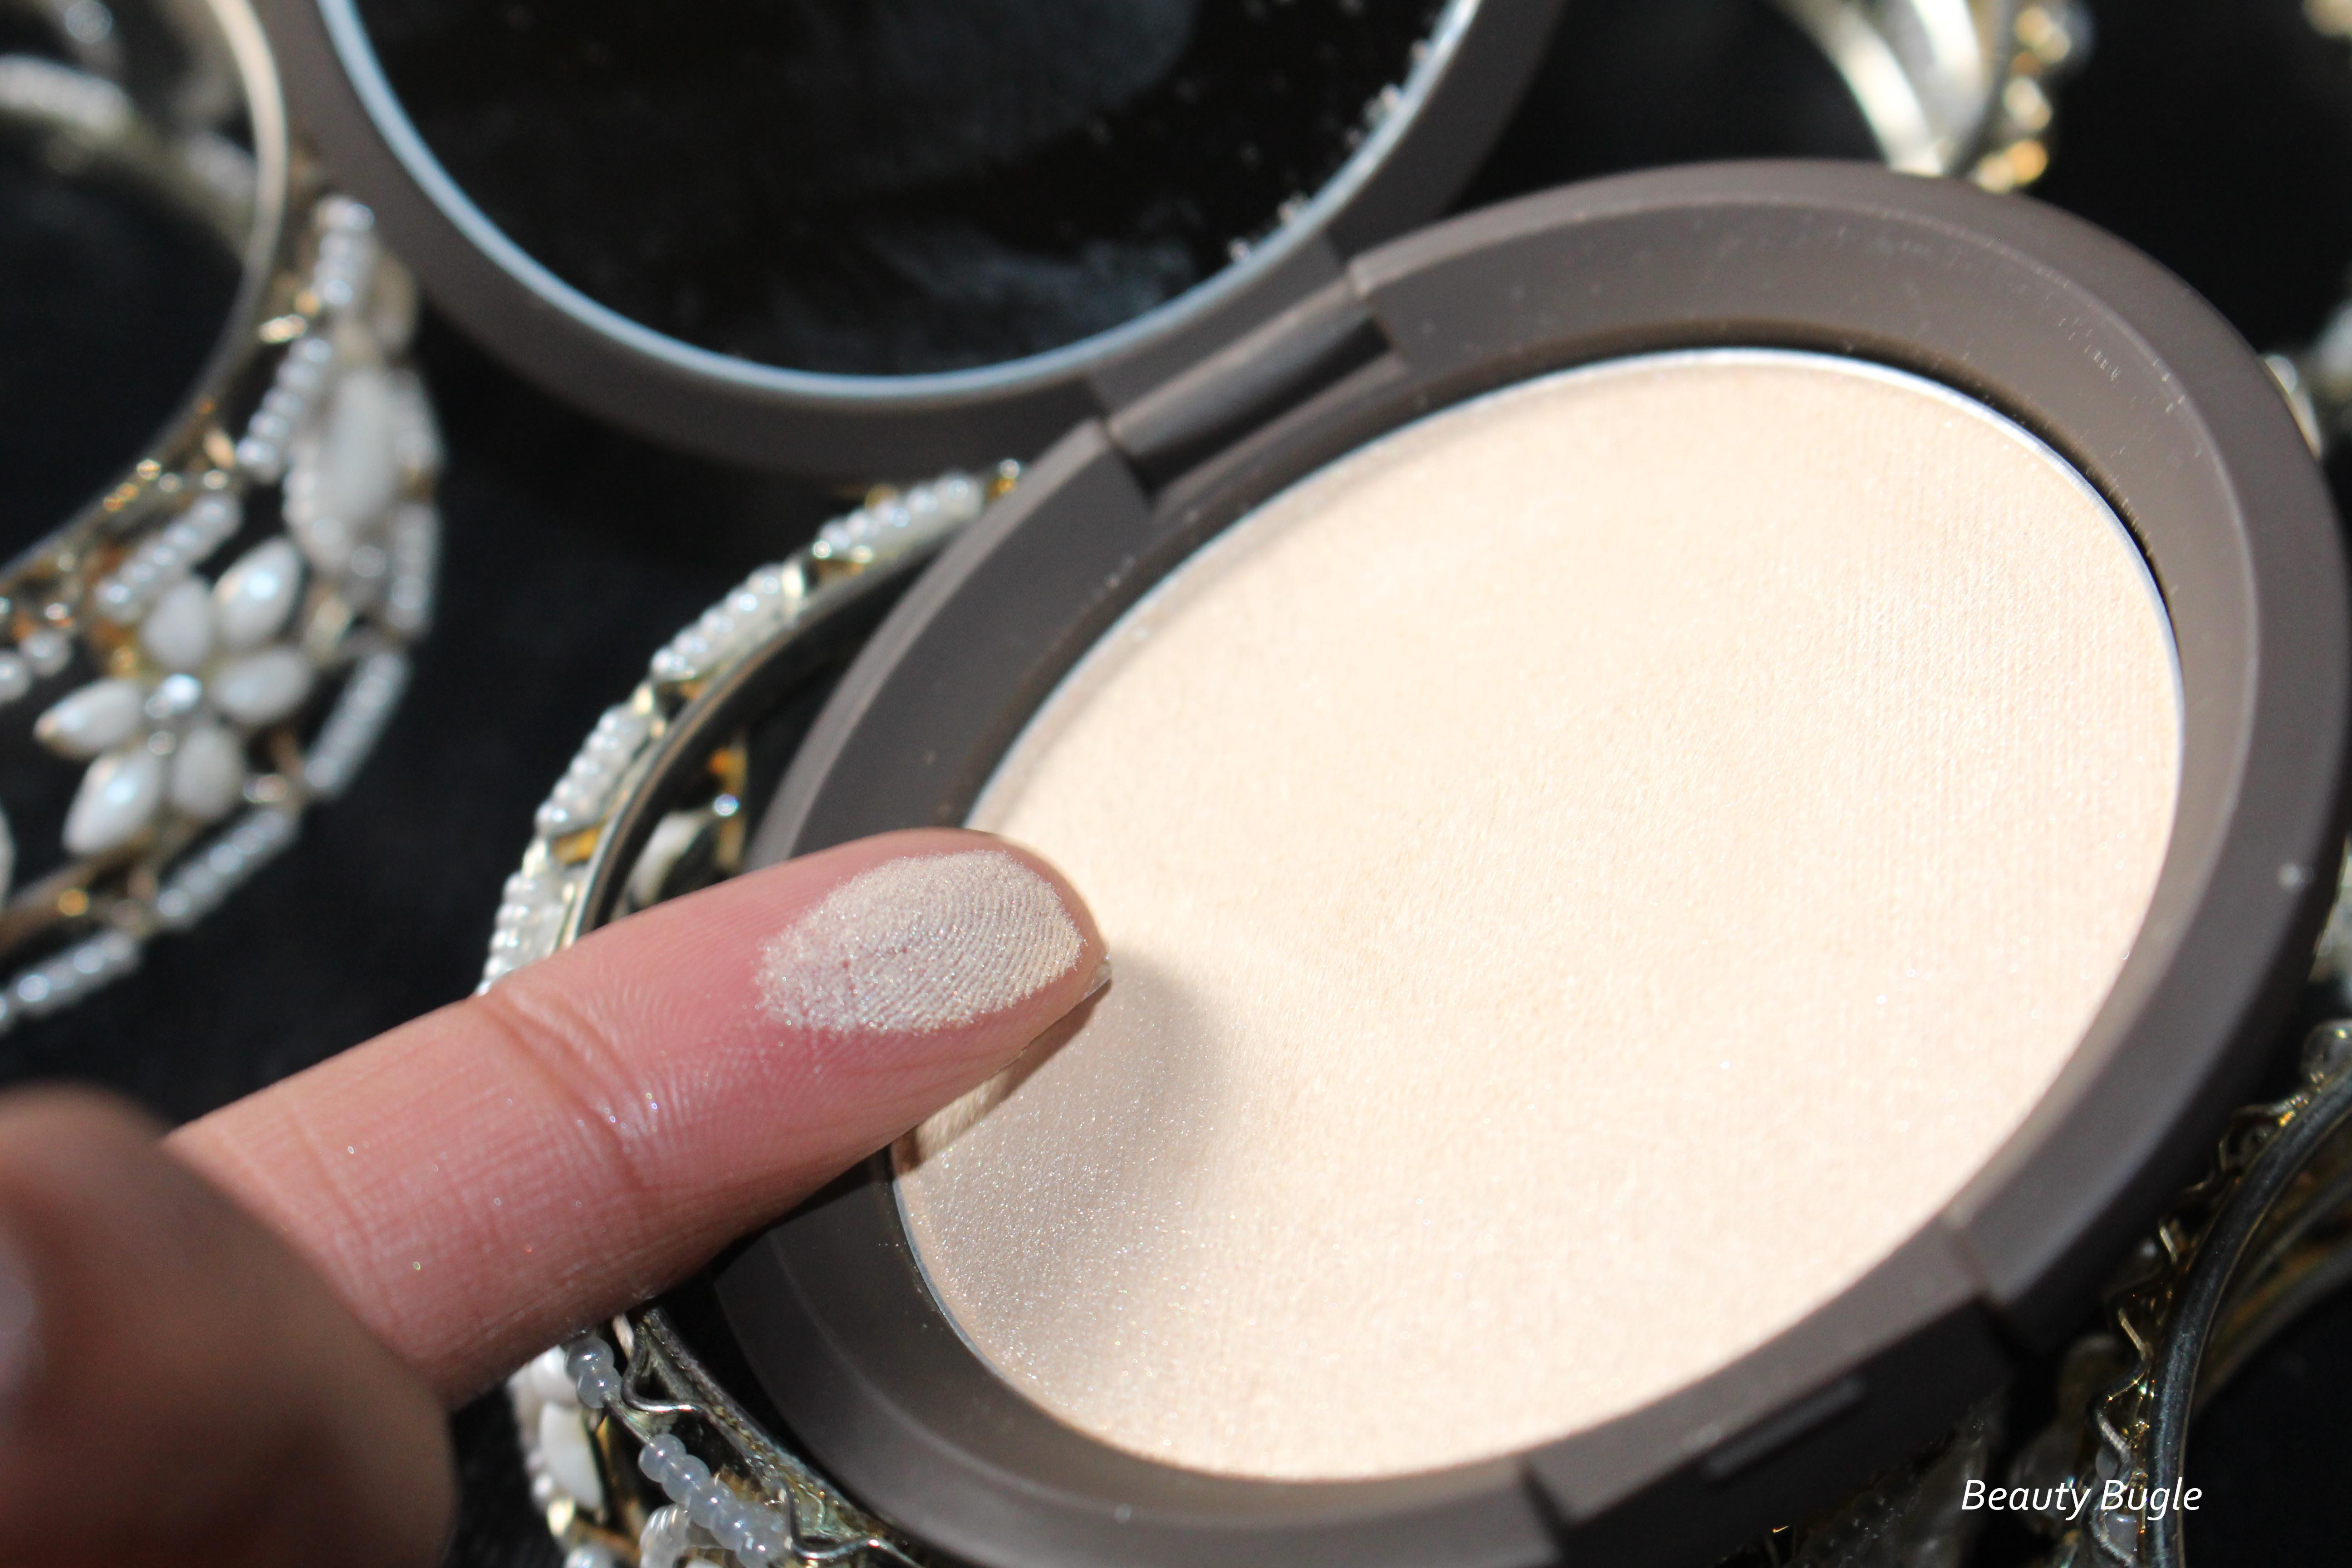 As you can see from the finger swatch, Becca's Shimmering Skin Perfector Pressed (Moonstone) is pretty white gold and you can detect a hint of chalkiness.